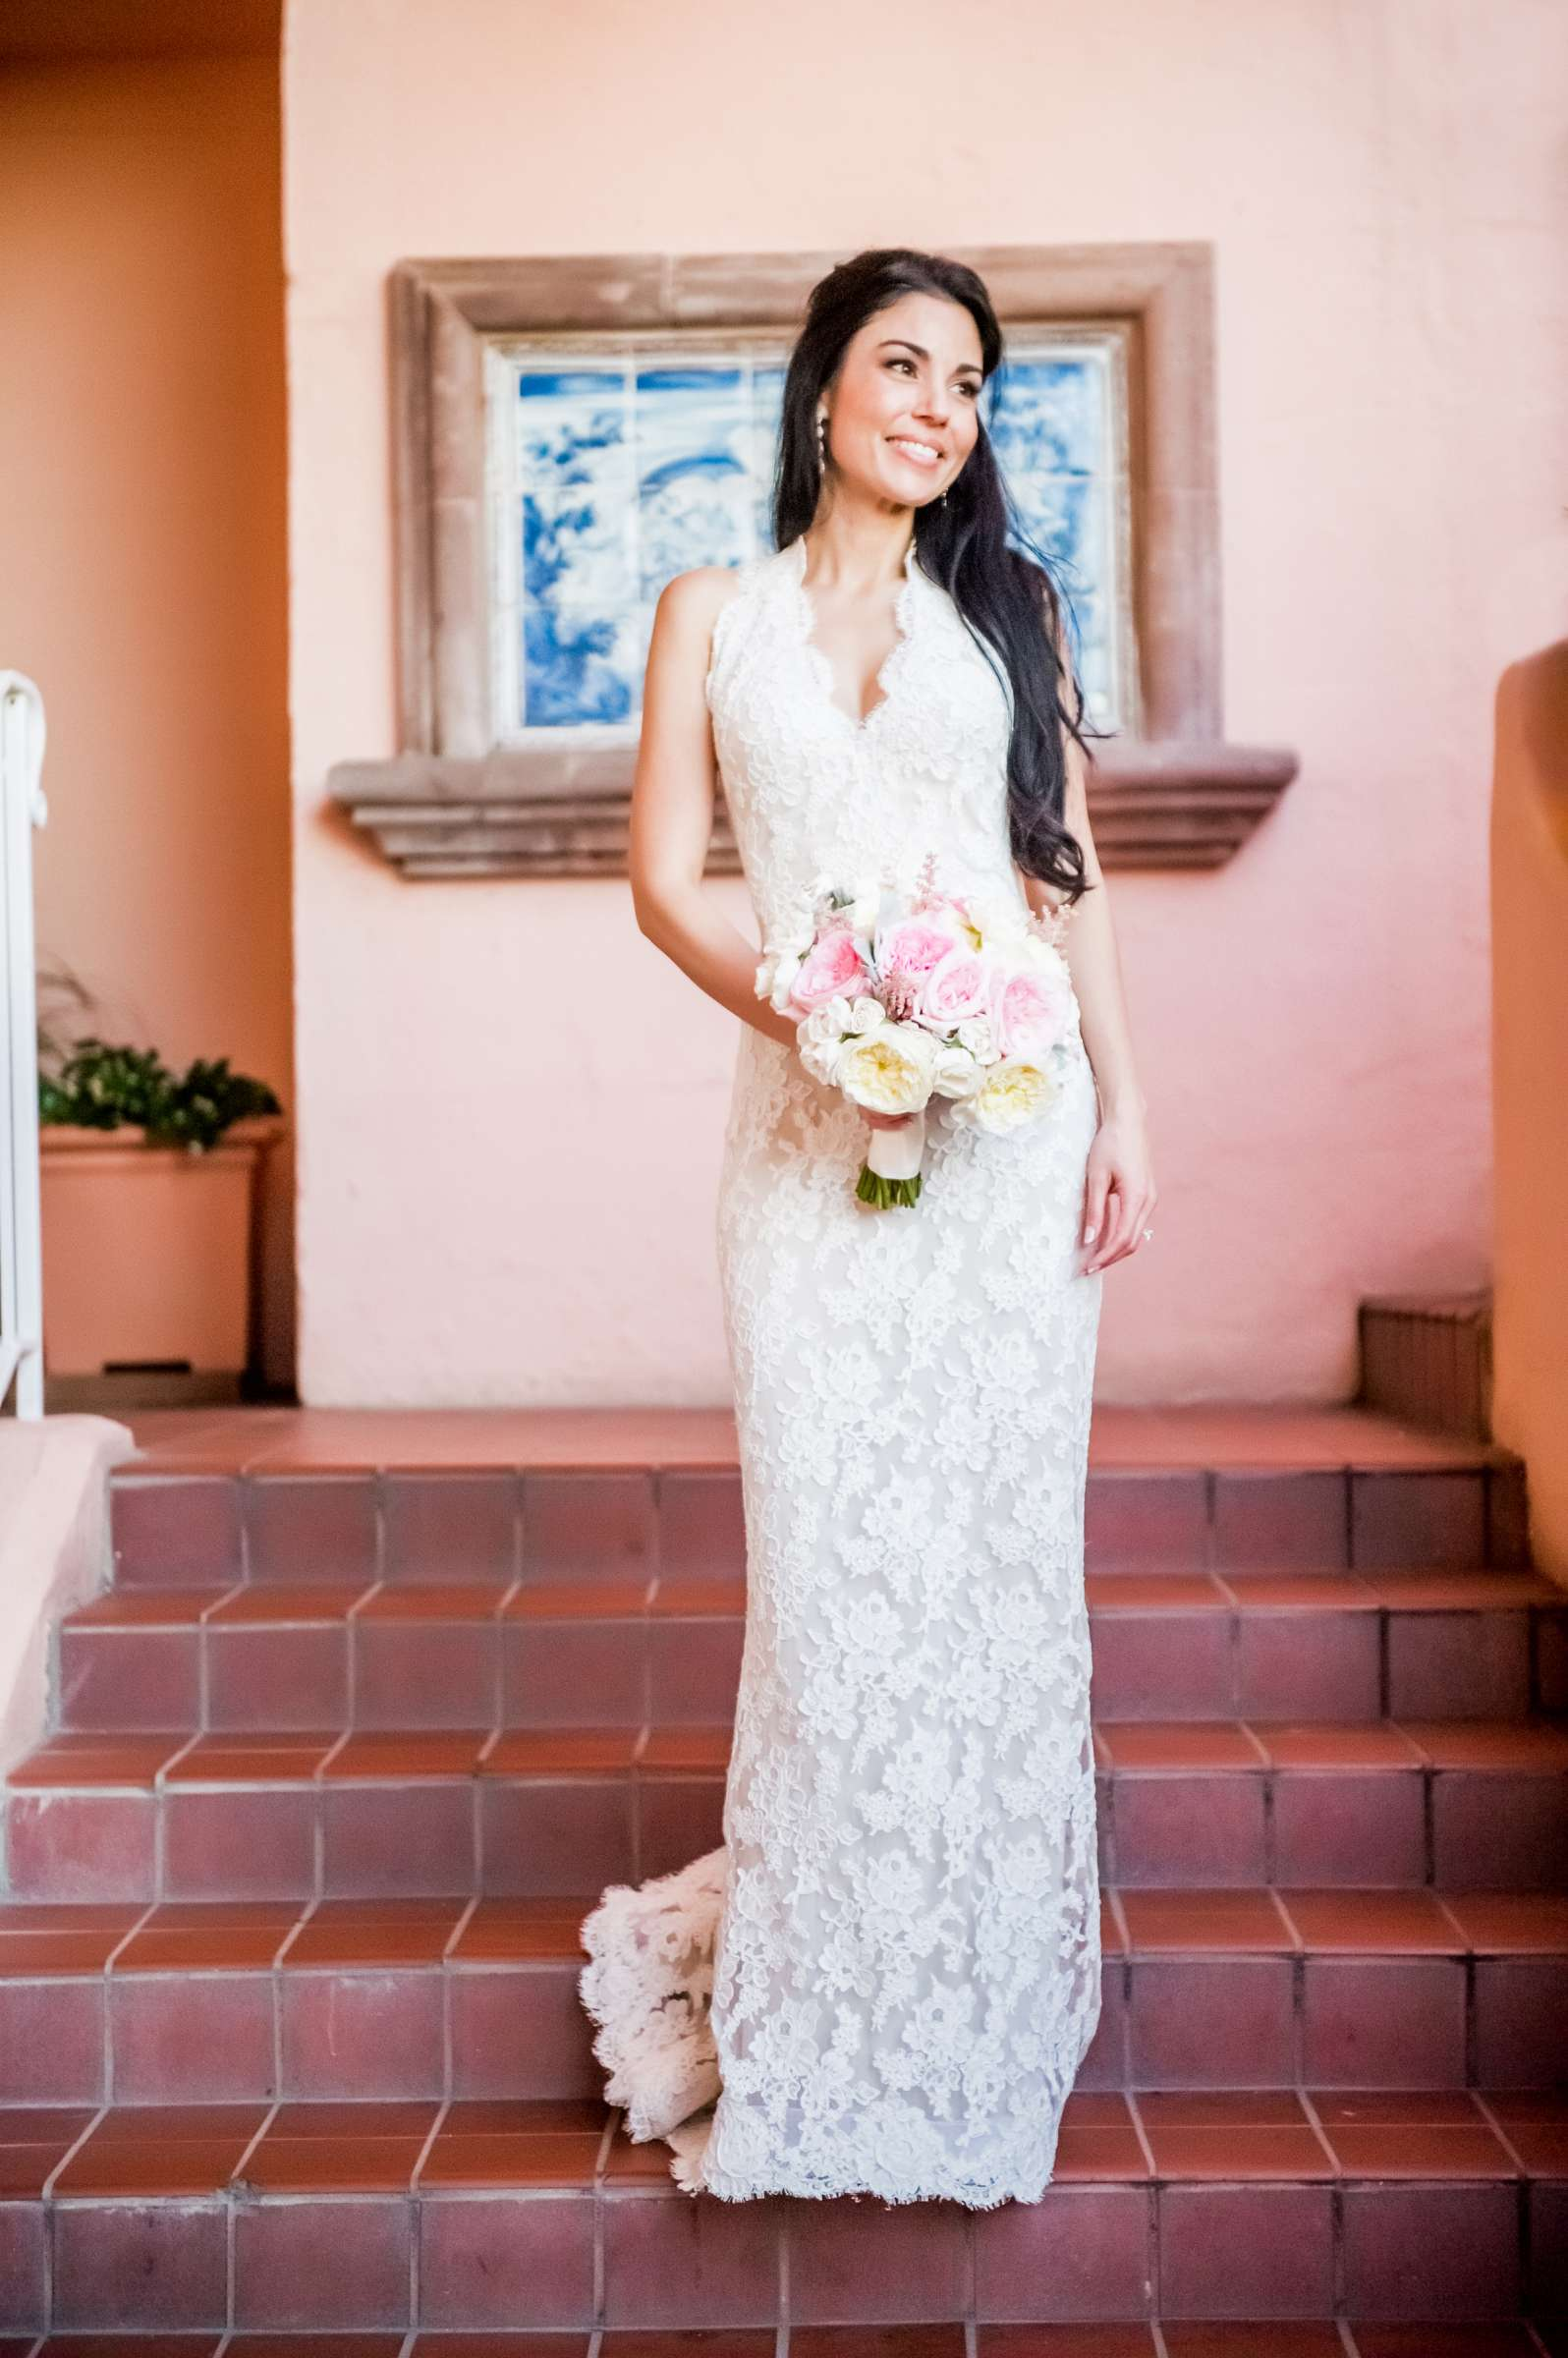 La Valencia Wedding coordinated by First Comes Love Weddings & Events, Lea and Nick Wedding Photo #3 by True Photography